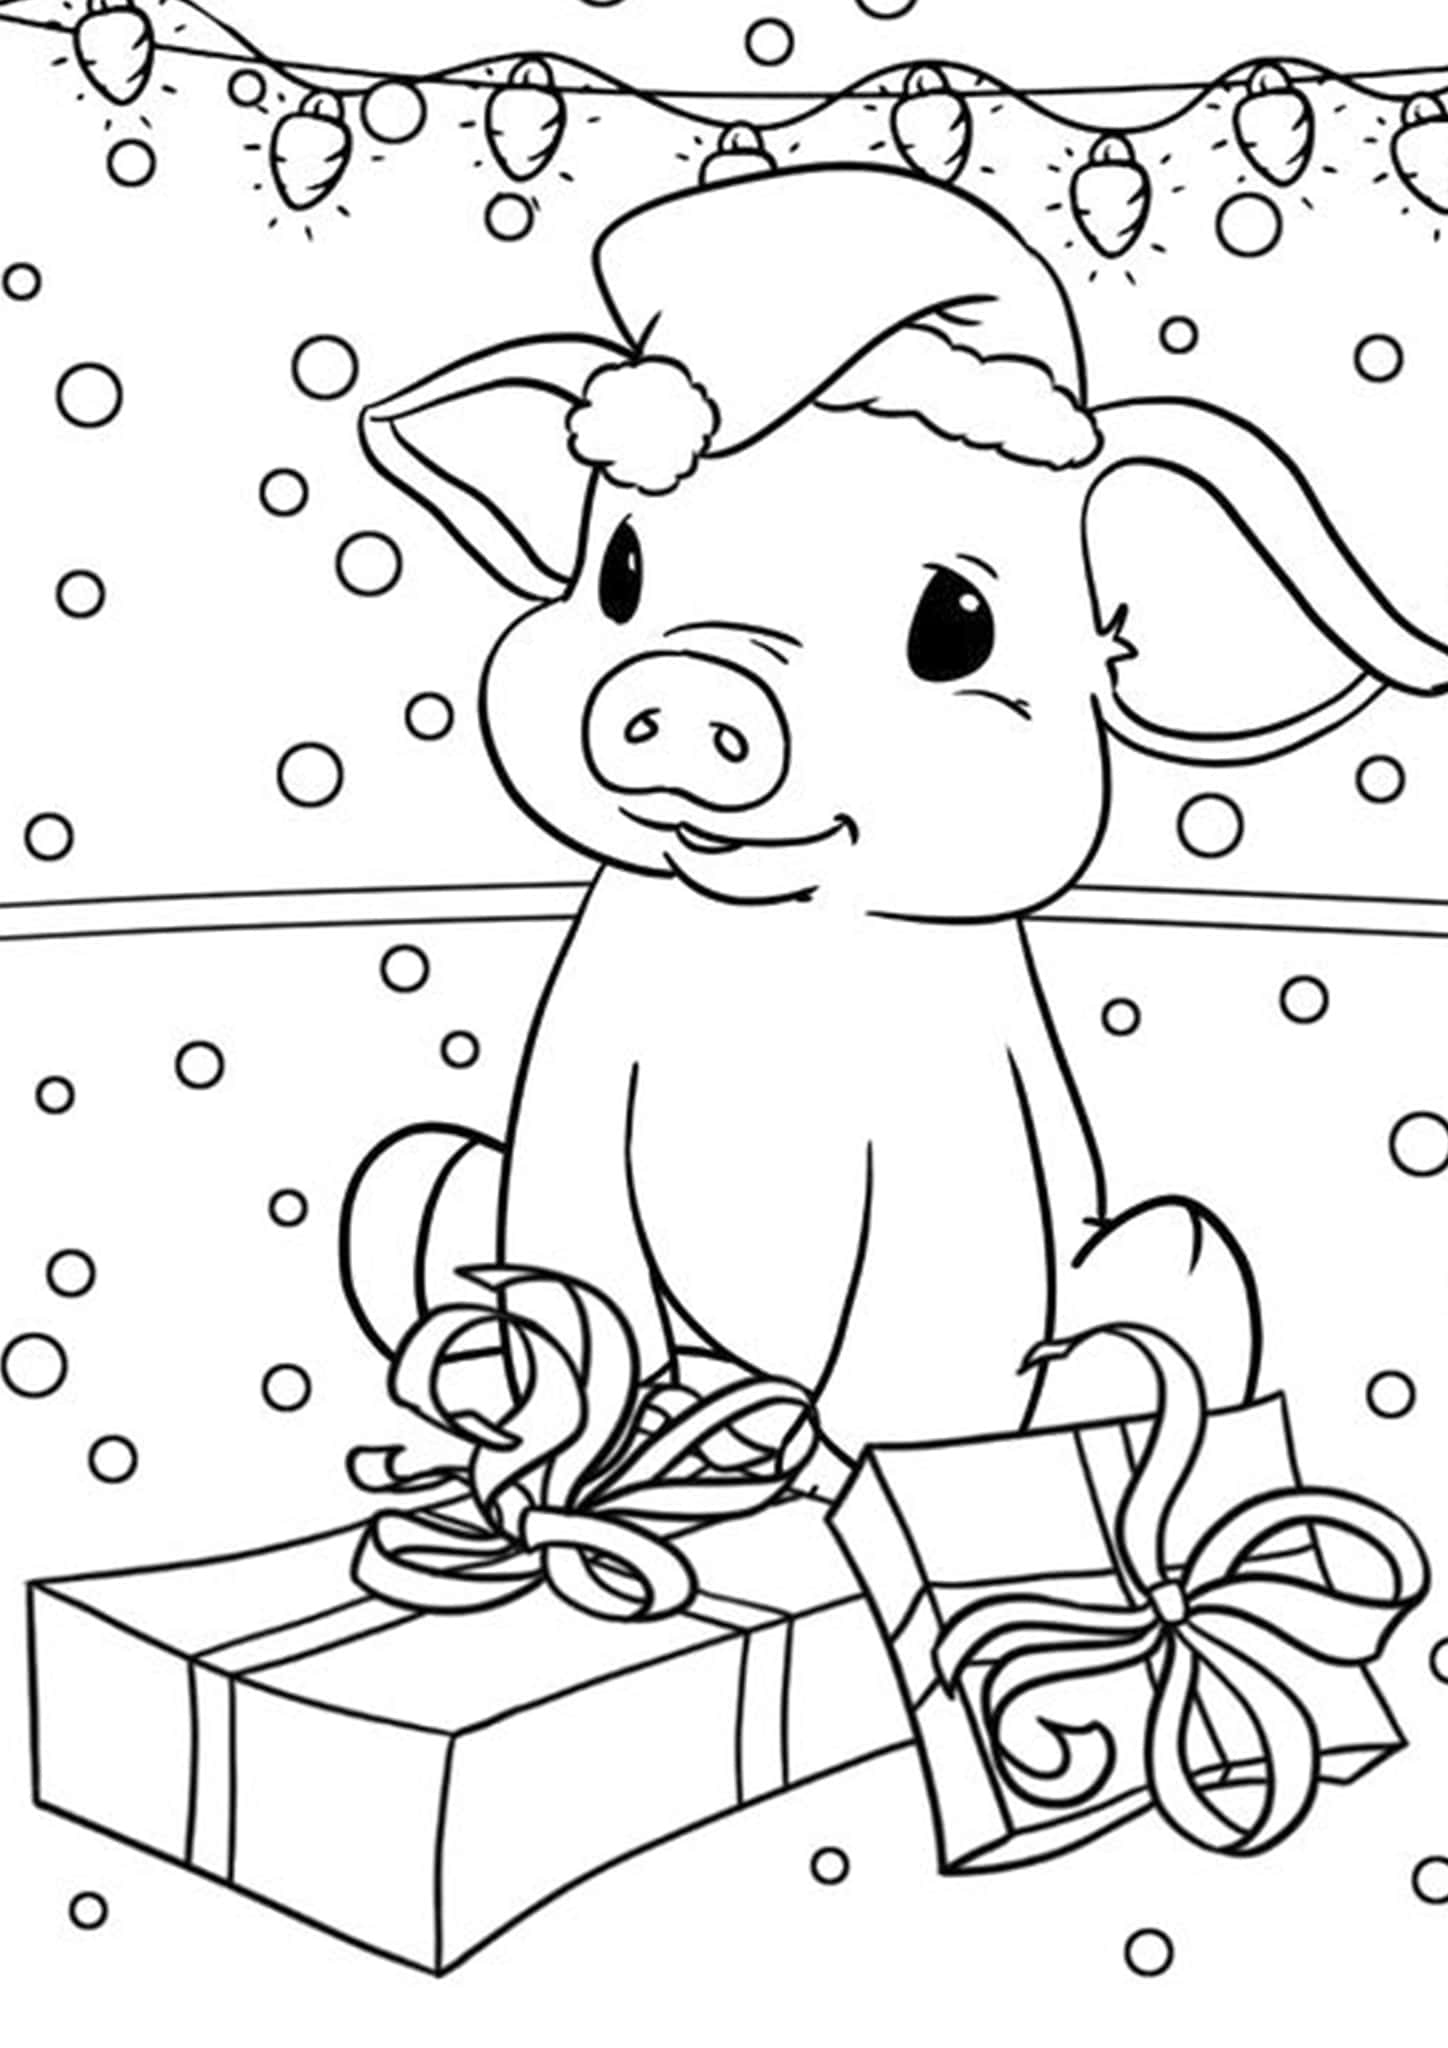 Free & Easy To Print Pig Coloring Pages - Tulamama